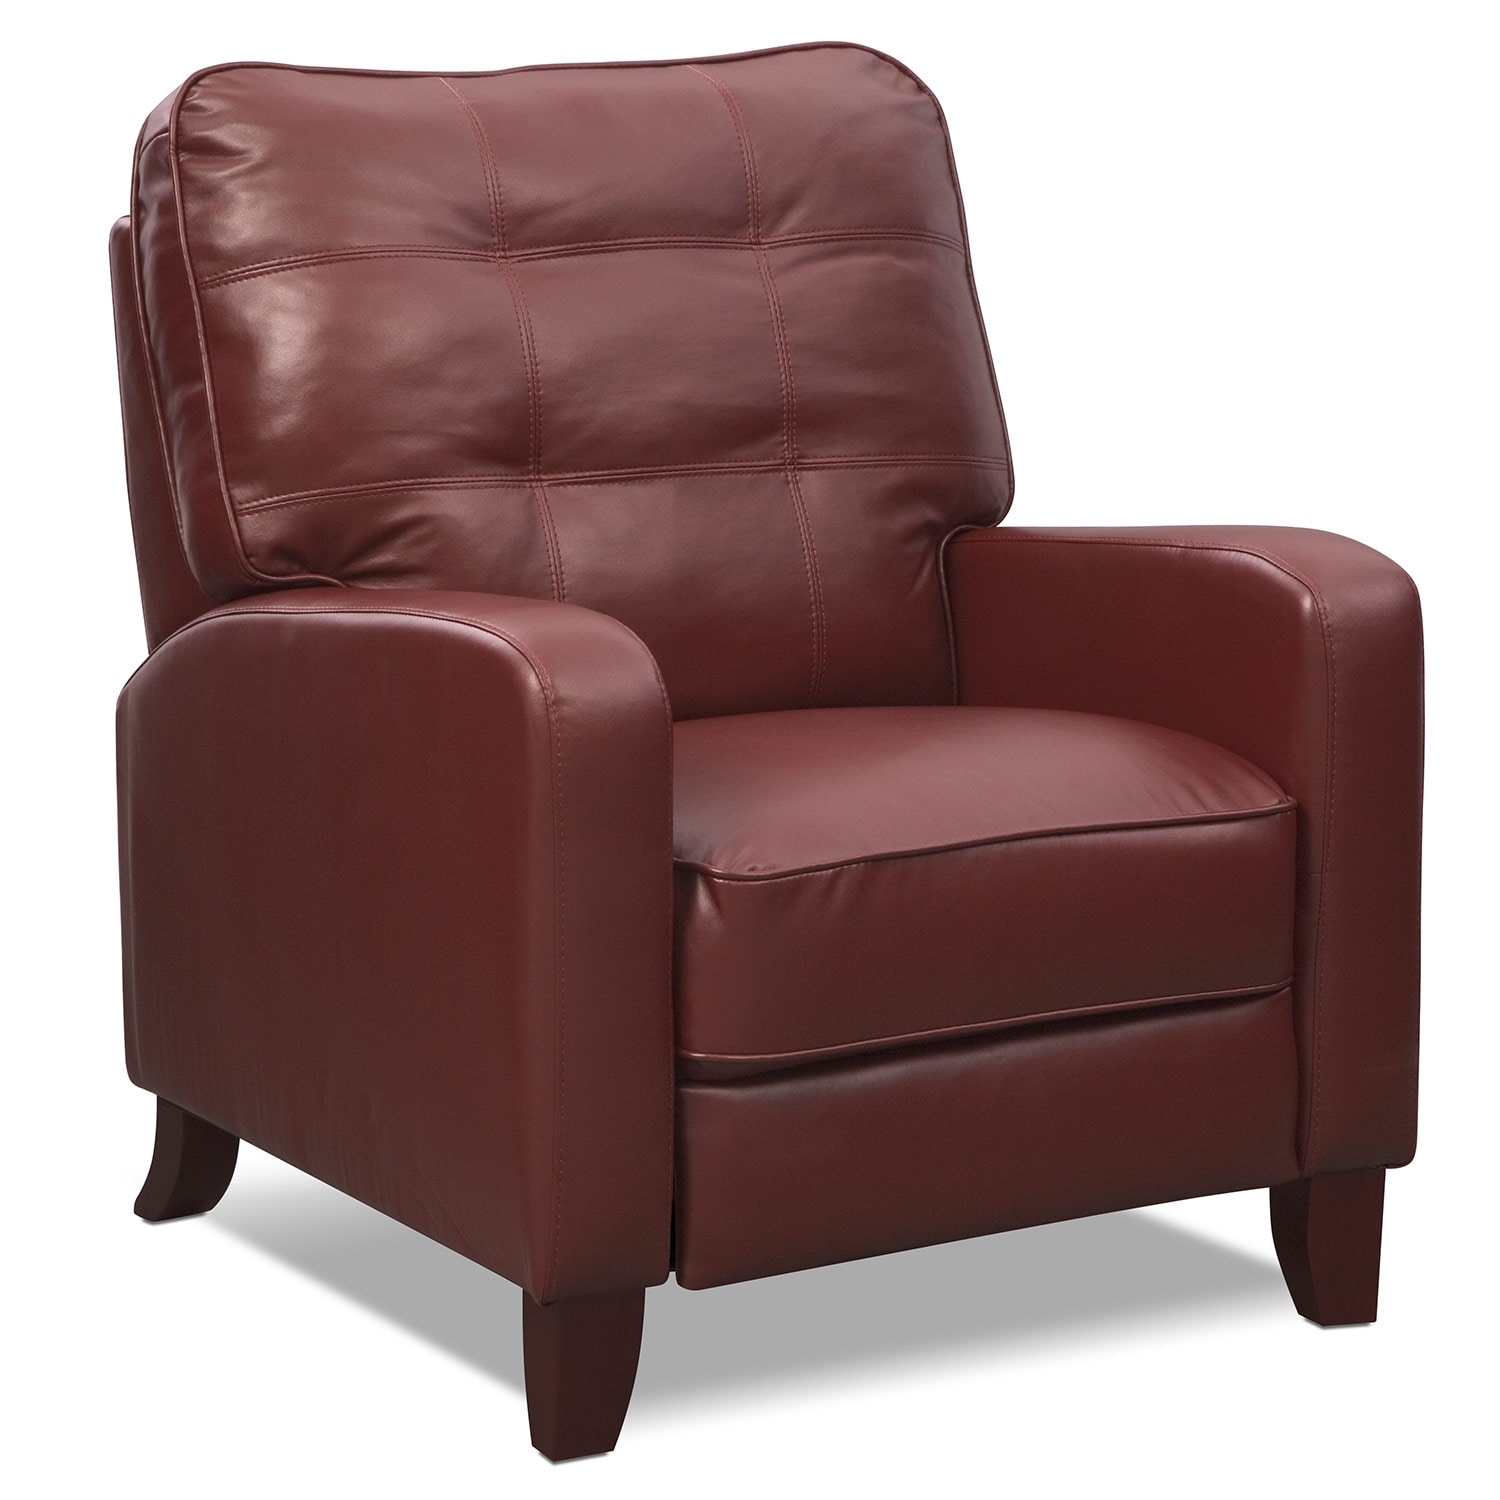 Clinton Push-Back Recliner